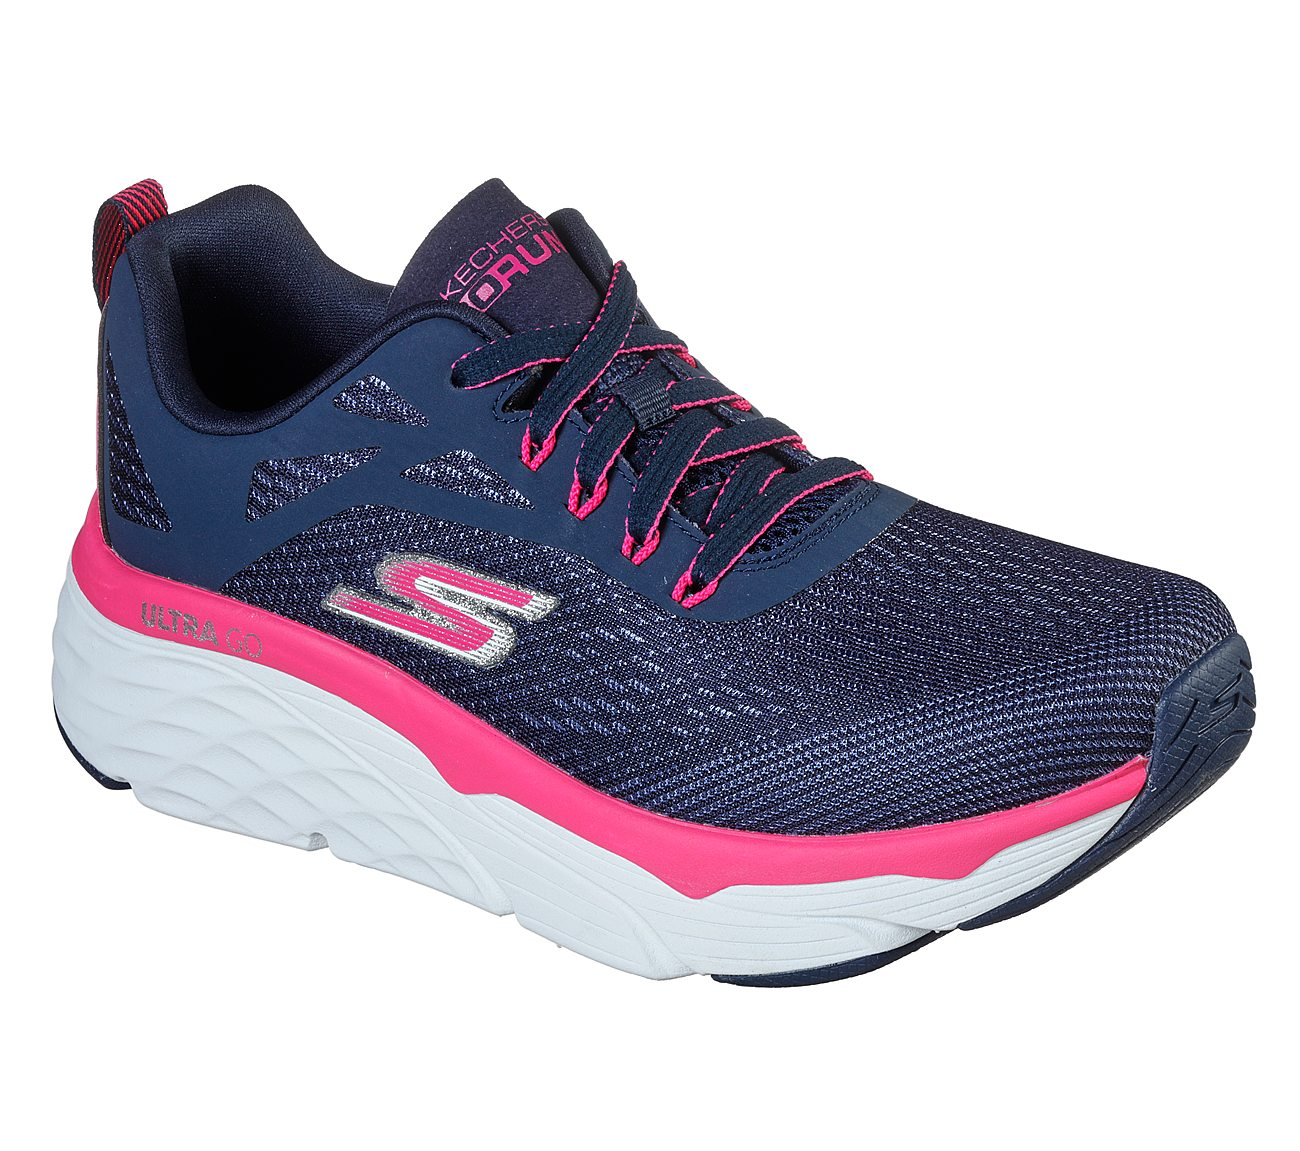 skechers shoes running